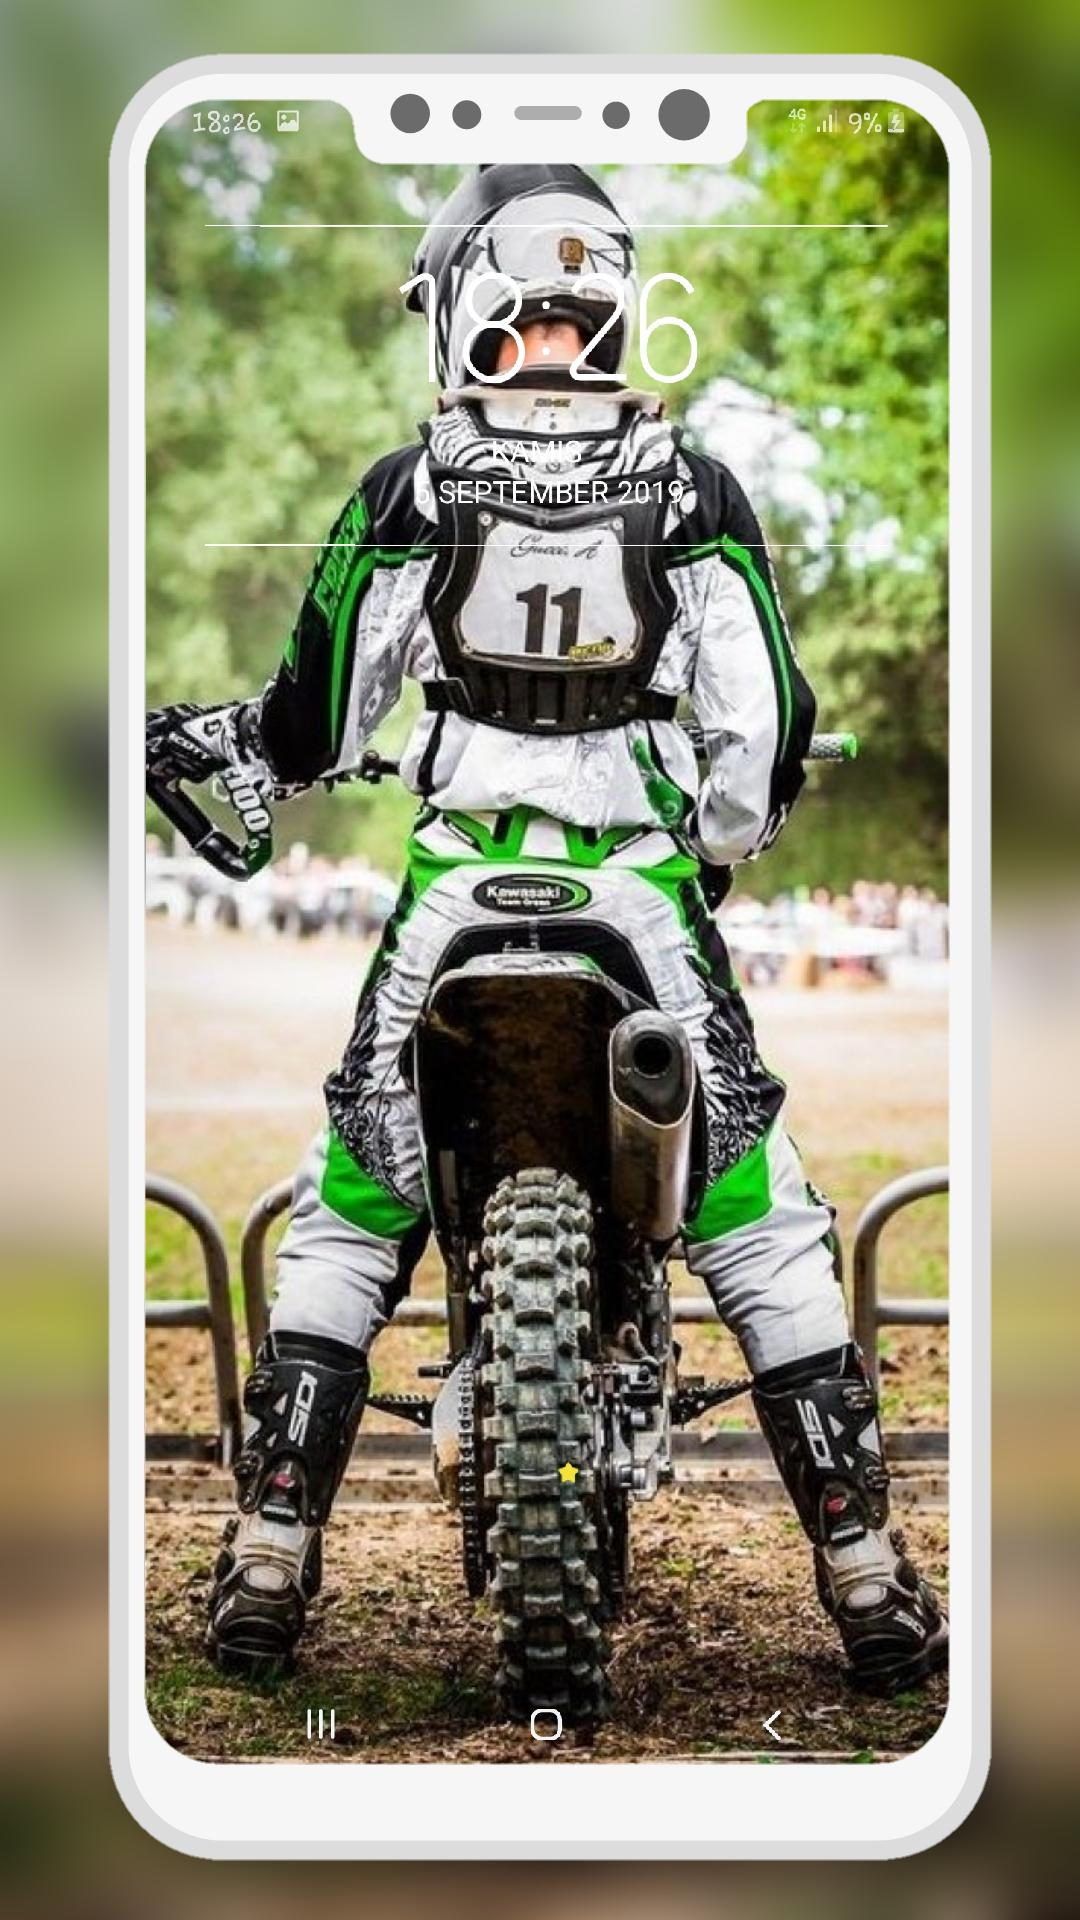 Motocross Wallpaper For Android APK Download